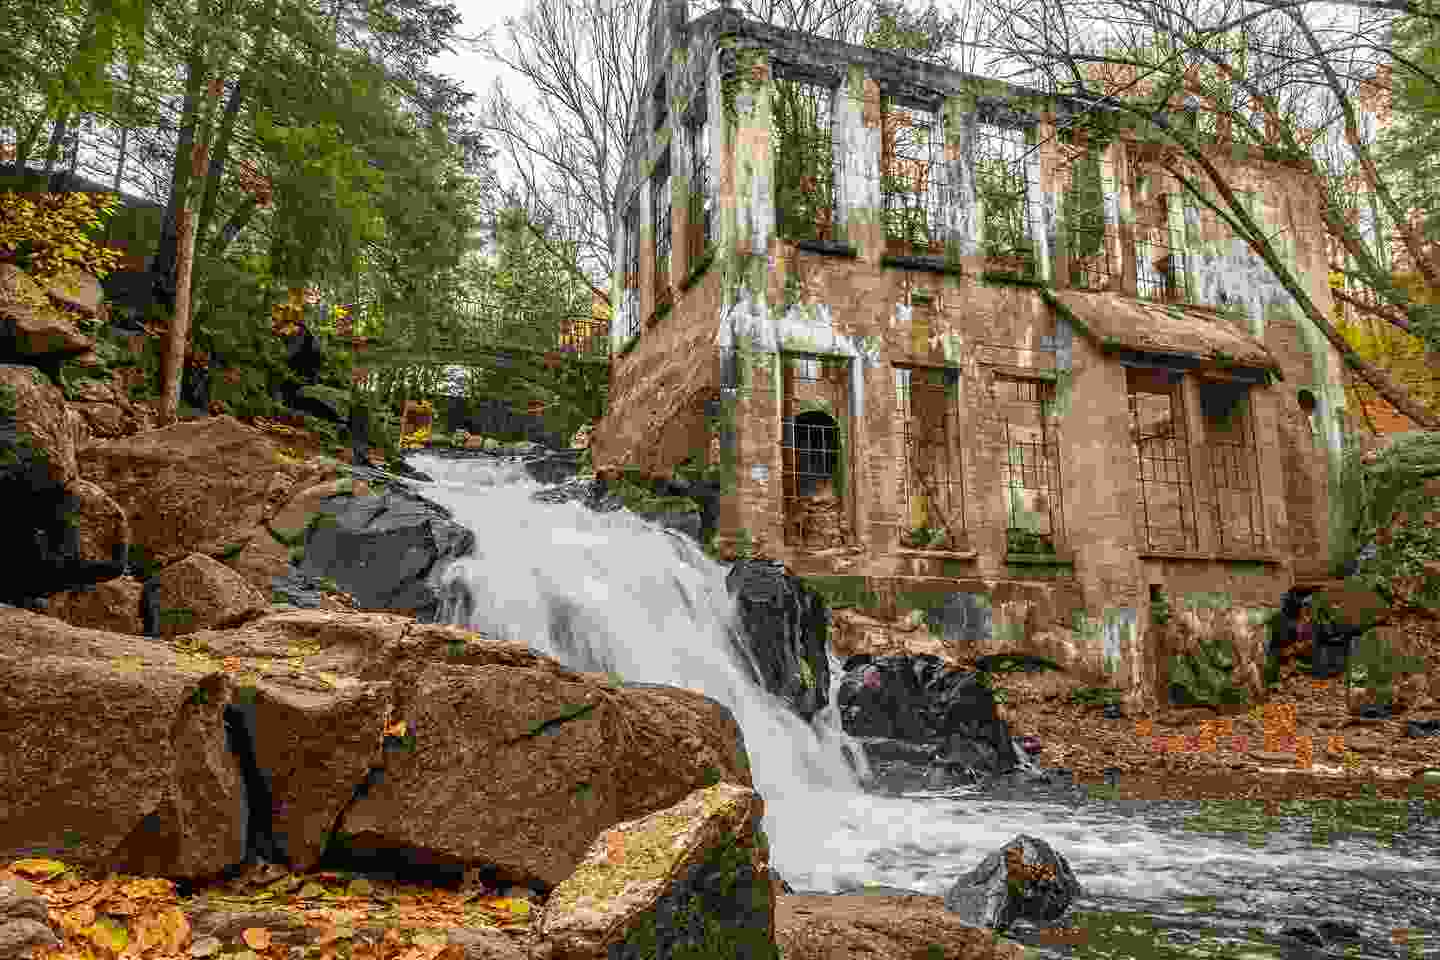 Thomas 'Carbide' Willson's home is now a nature-filled ruin (Shutterstock)